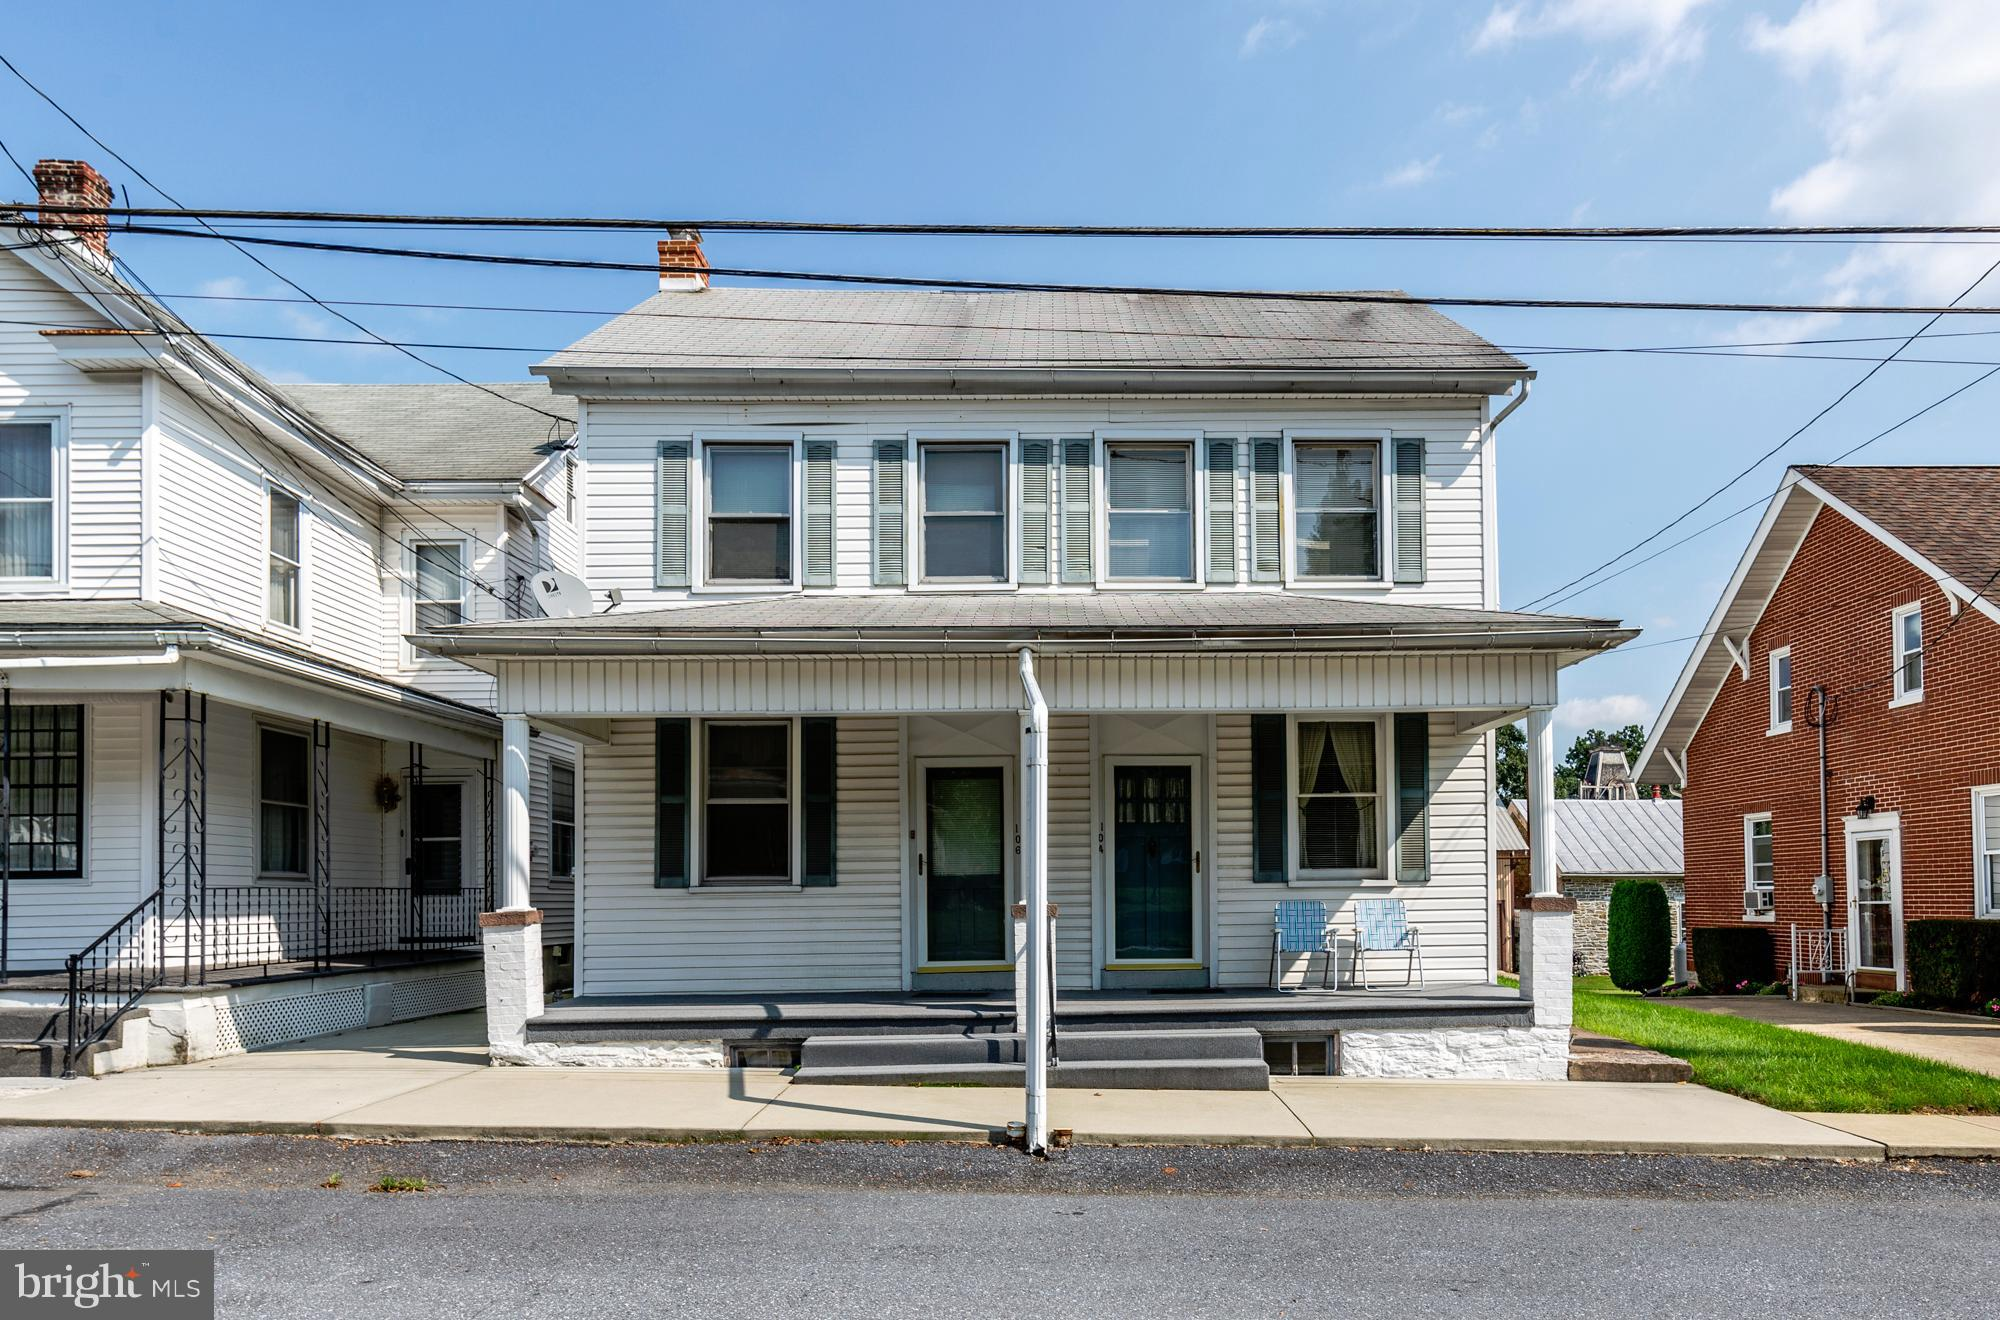 104 and 106 N CARPENTER STREET, SCHAEFFERSTOWN, PA 17088